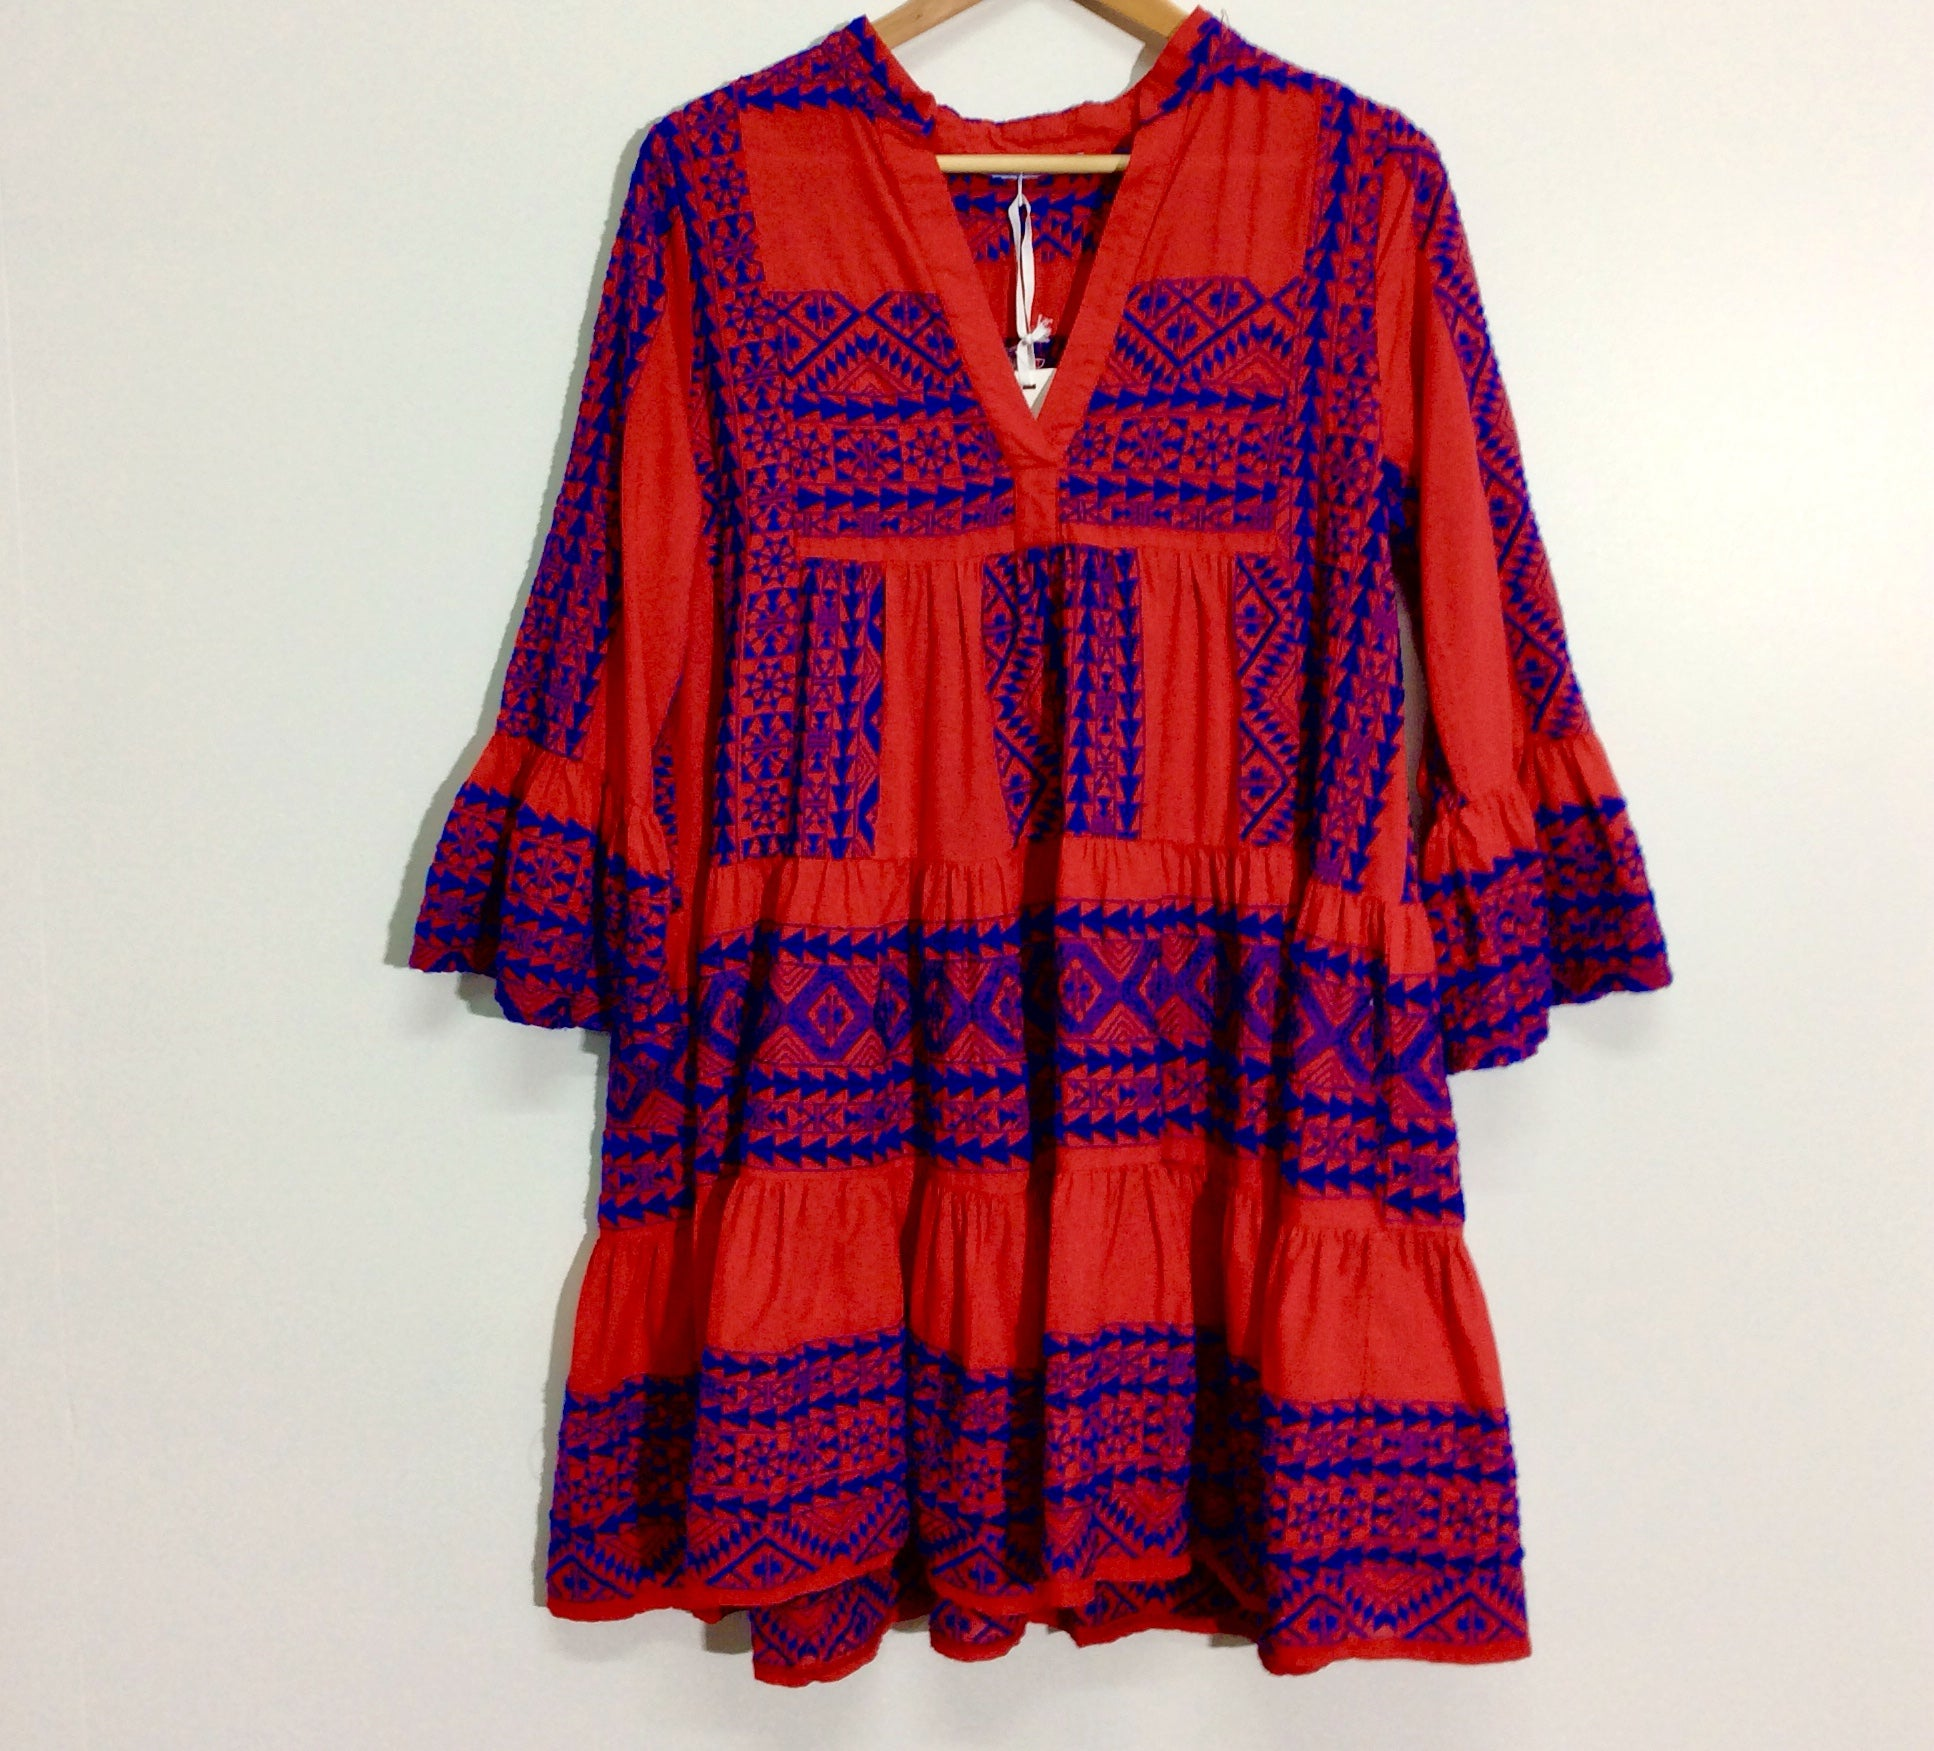 AZTEC EFANDO DRESS by KORI